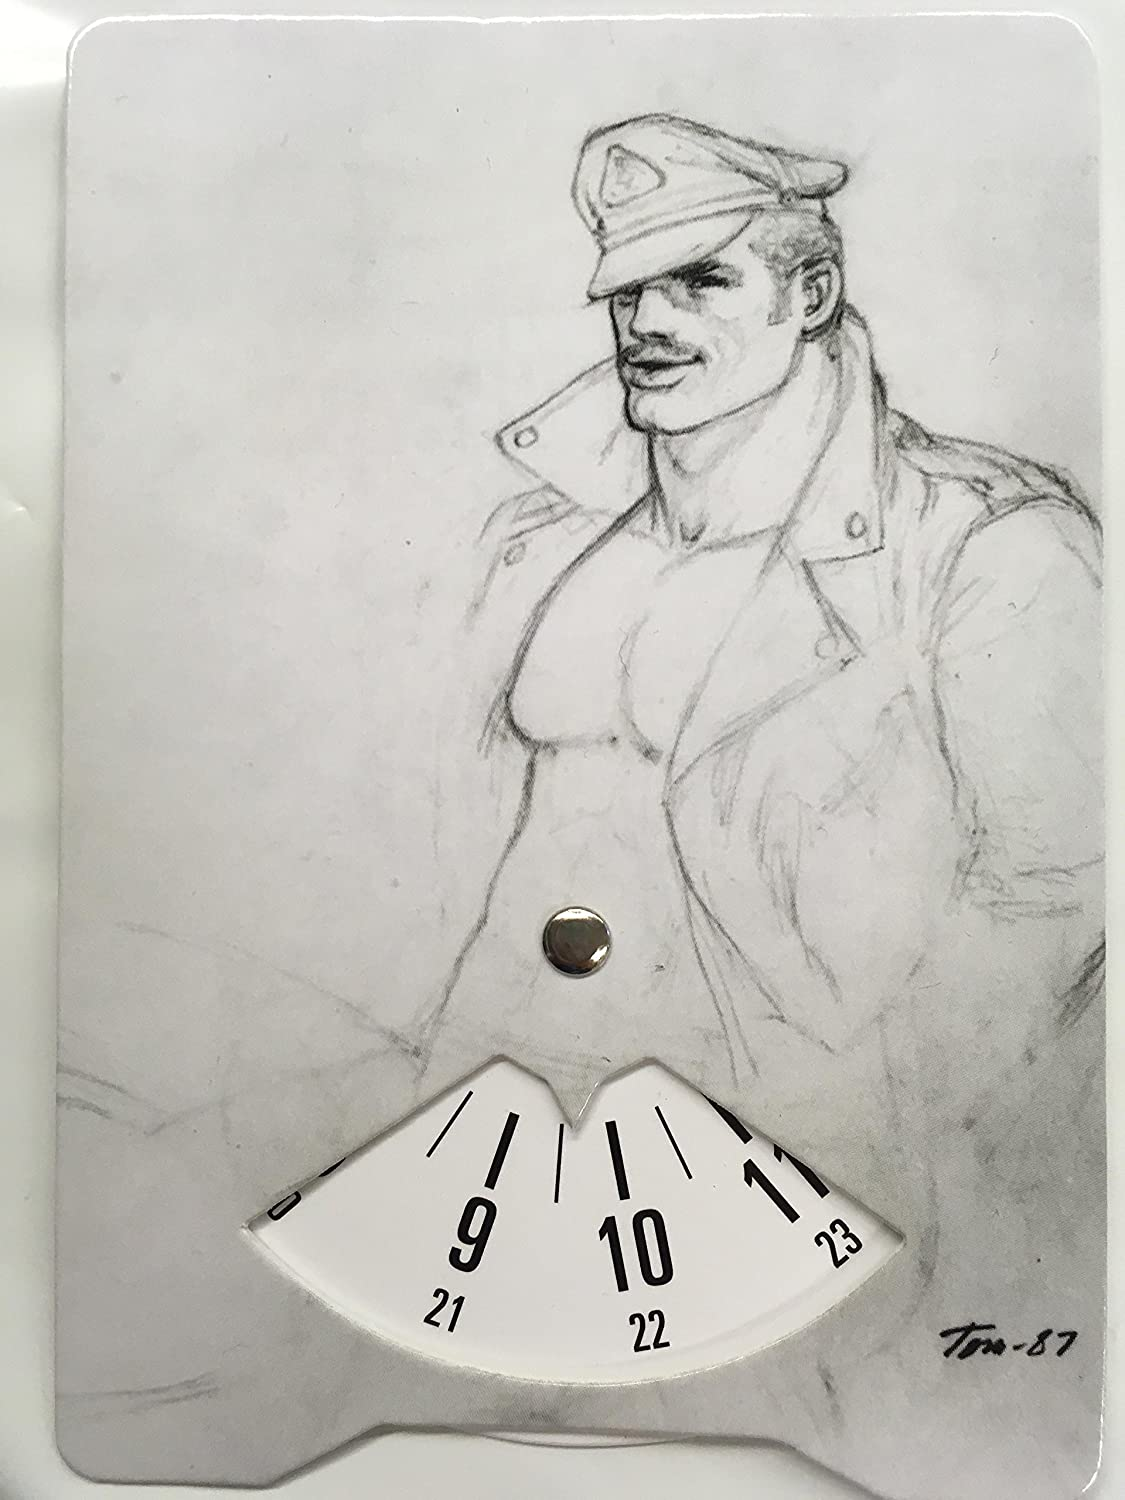 TOM OF FINLAND Card w Time Display for Parking and Pleasure Biker